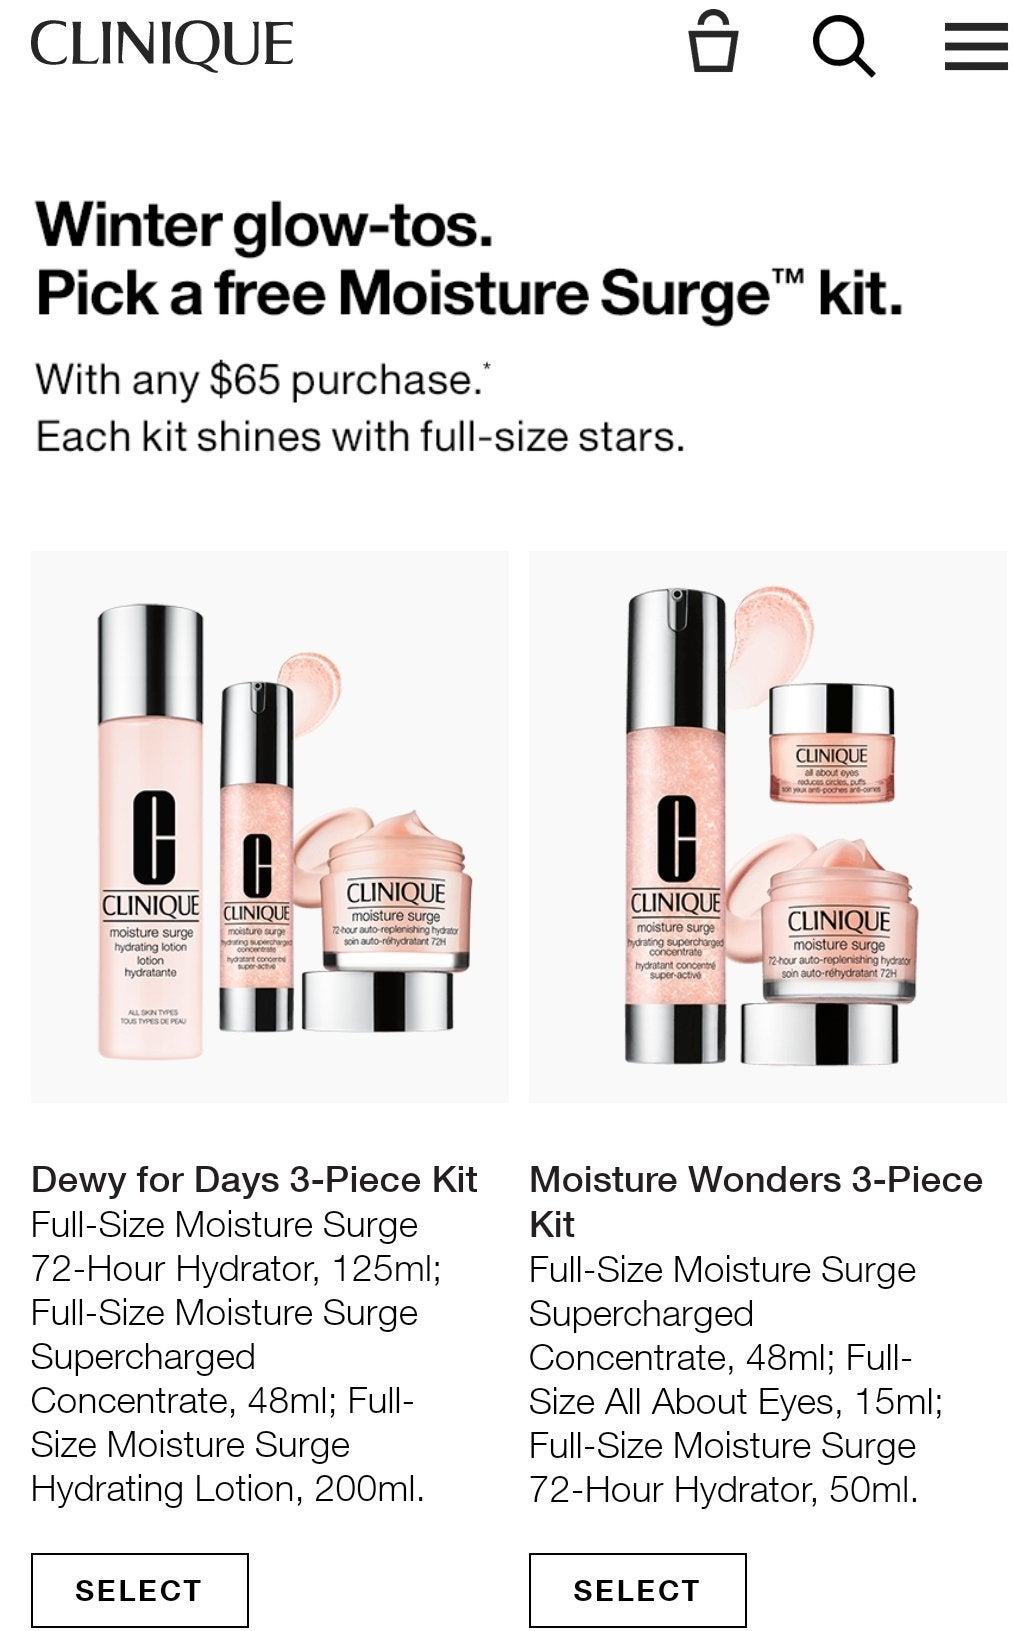 CLINIQUE: Get free moisture surge kit with any $65 purchase.